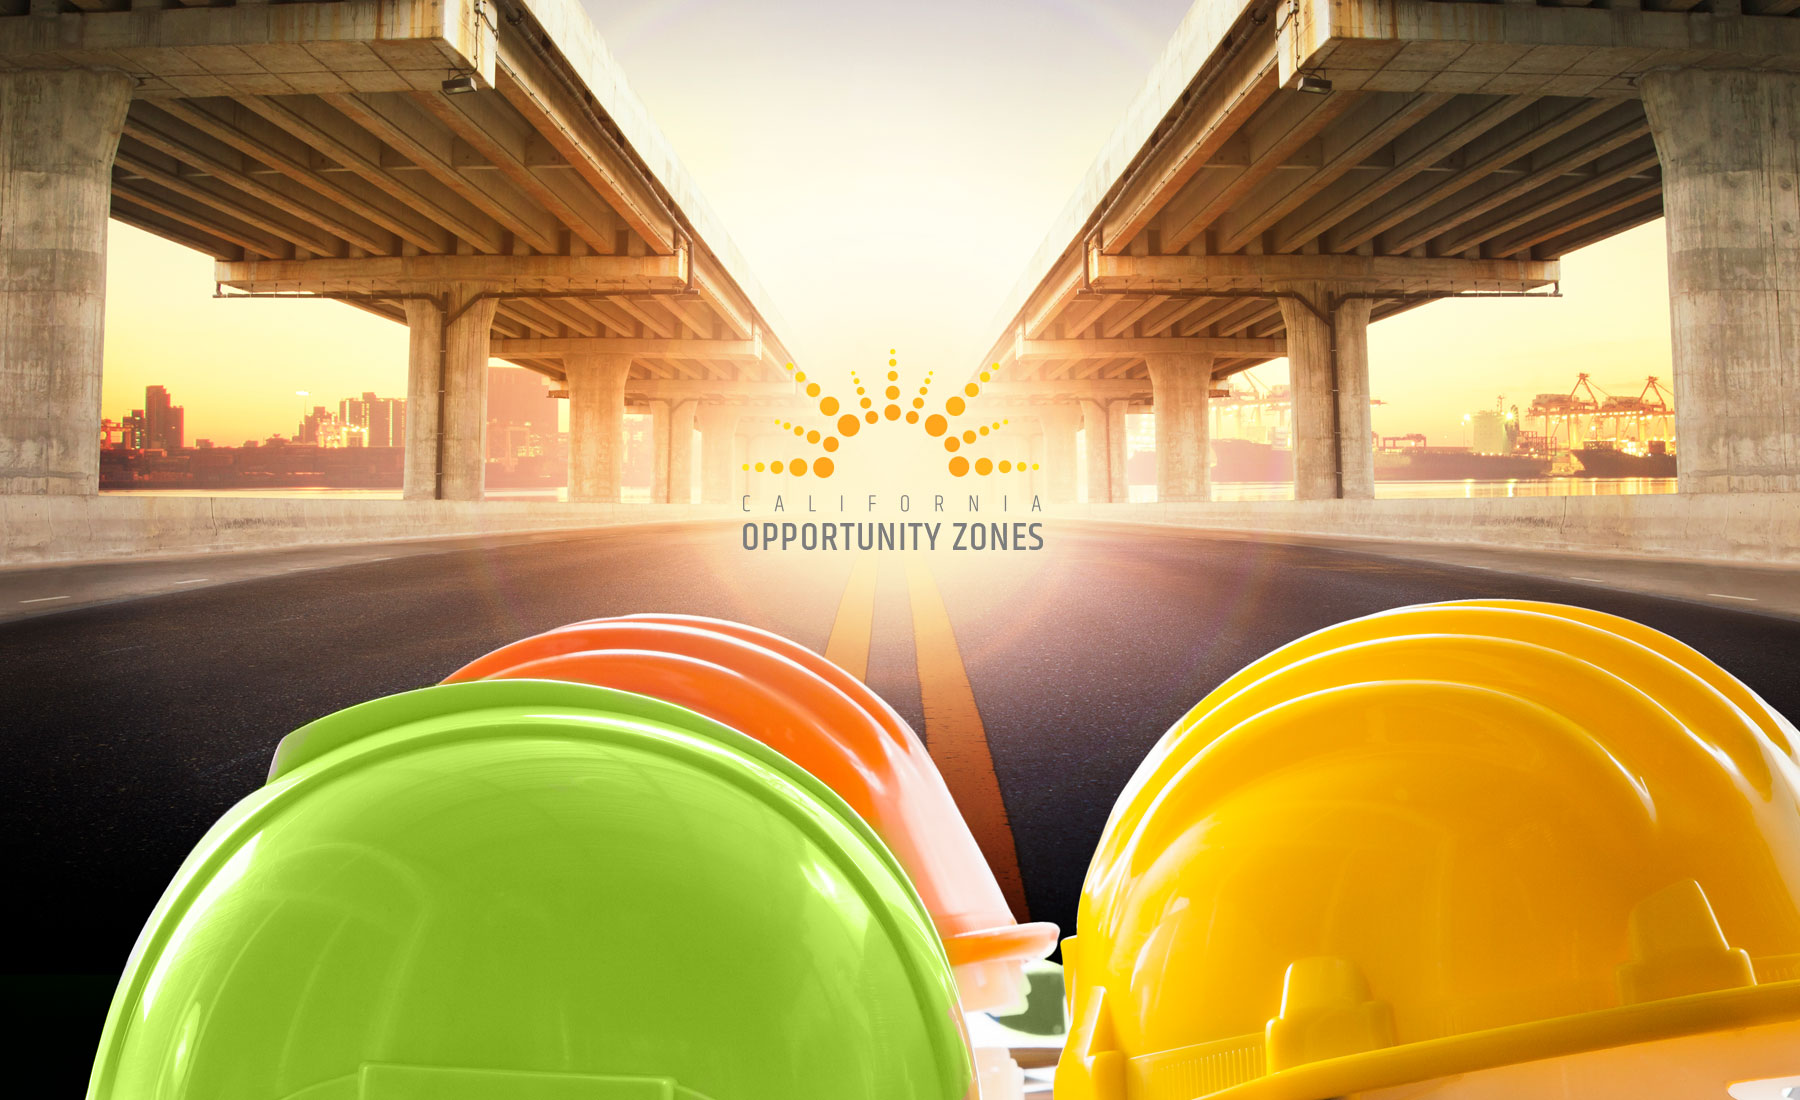 Opportunity Zones in California tax incentives could help spur inclusive economic development growth